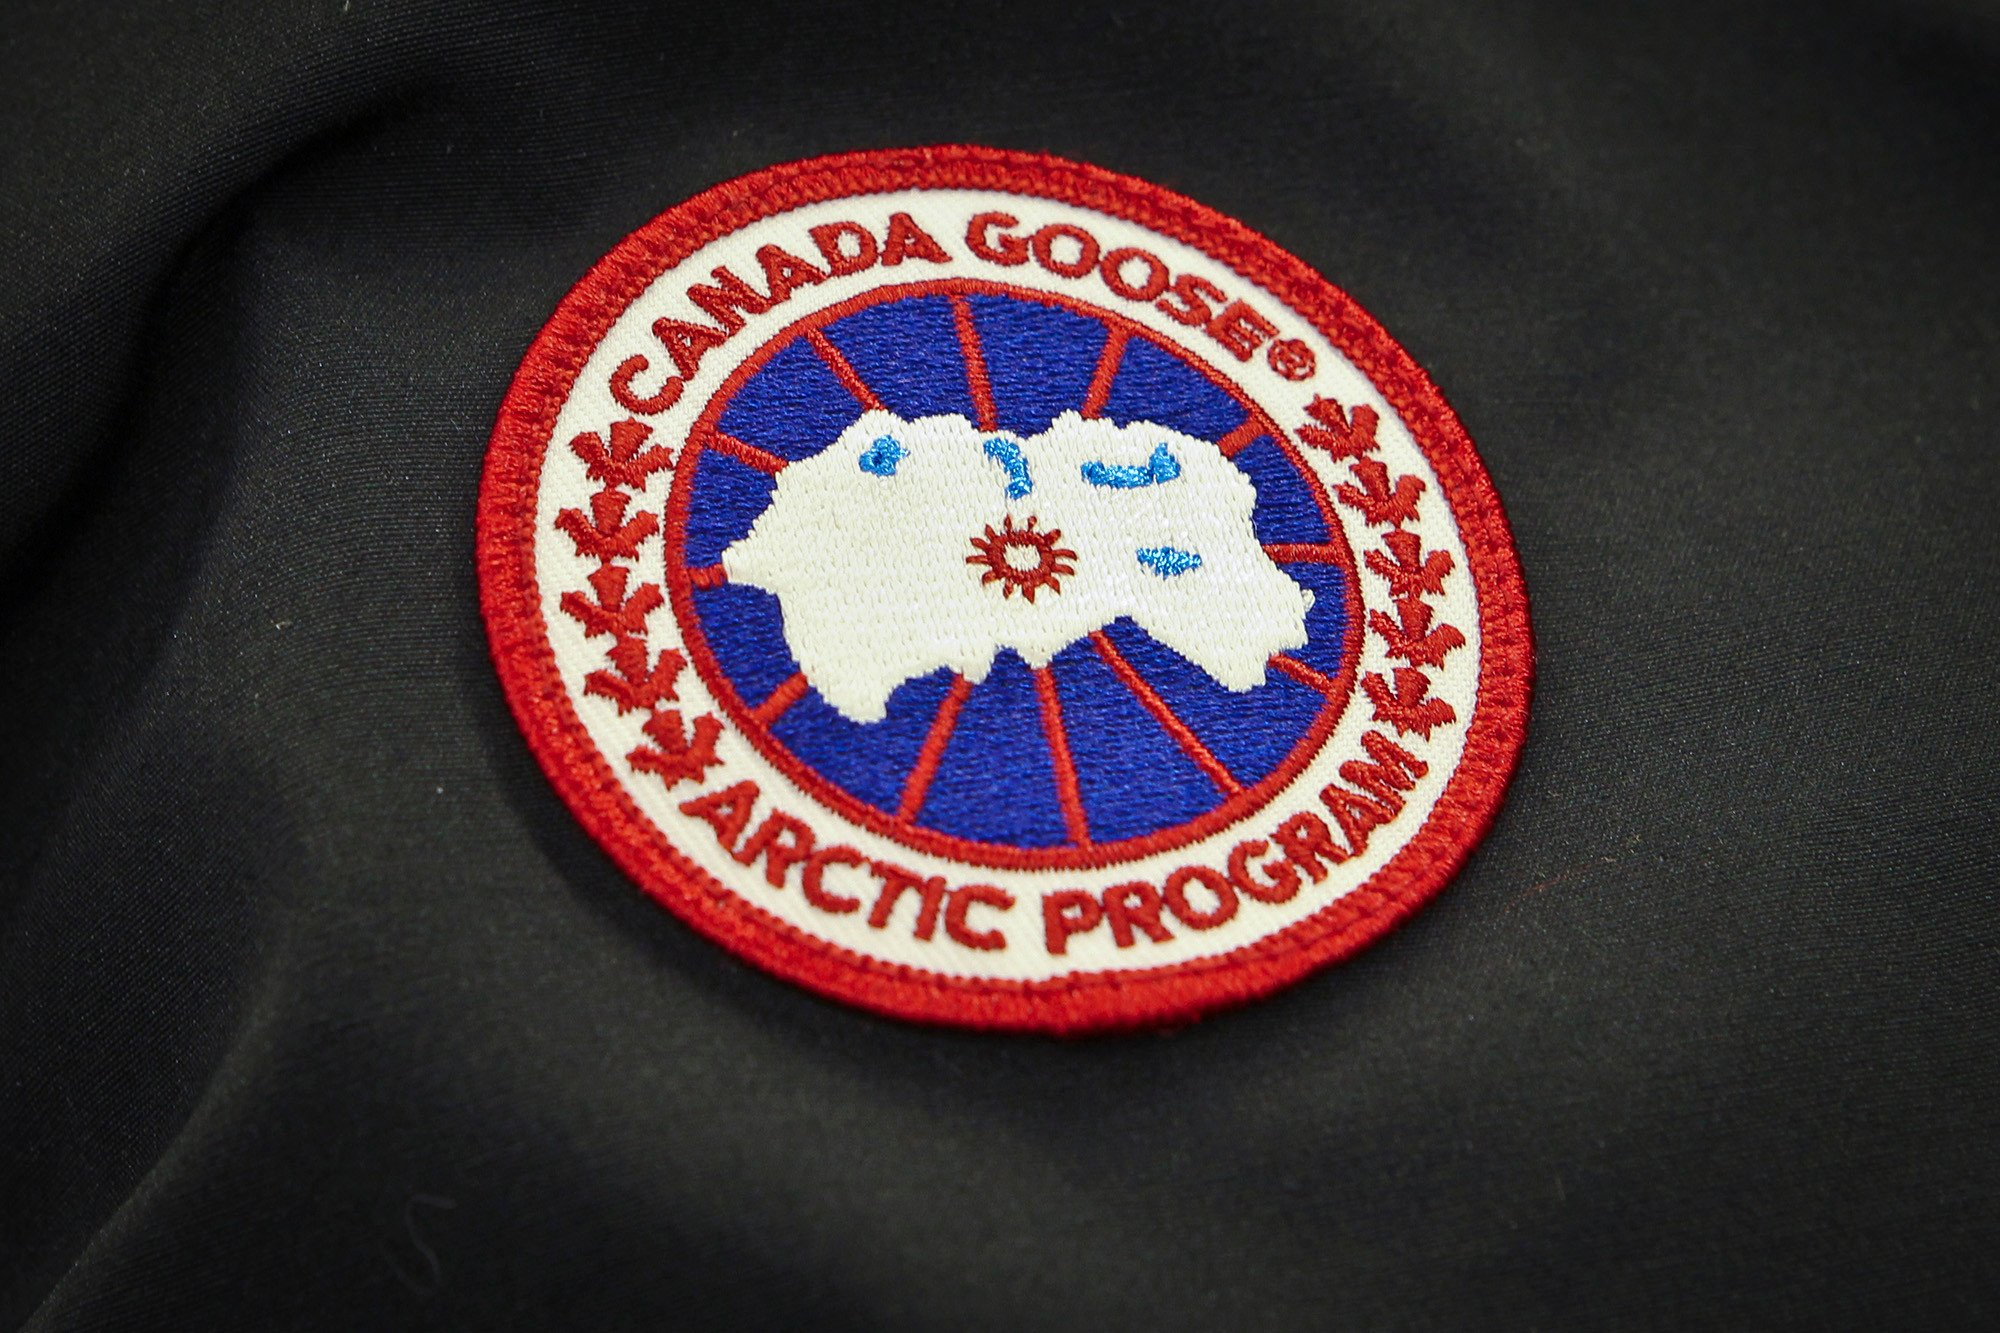 Canada Goose may launch bedding and shoe lines